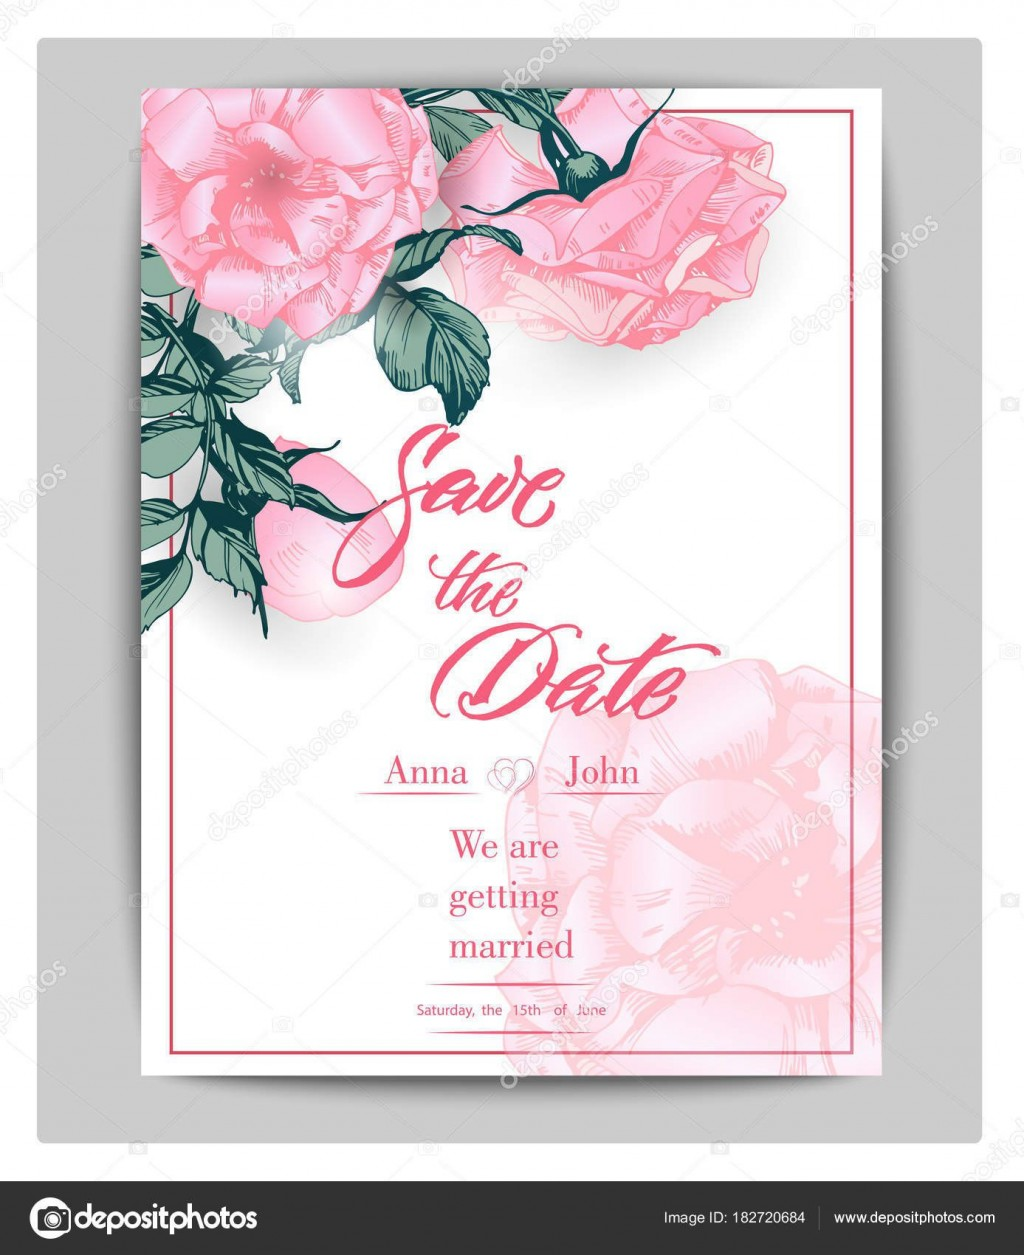 006 Top Save The Date Birthday Card Template High Resolution  Free PrintableLarge